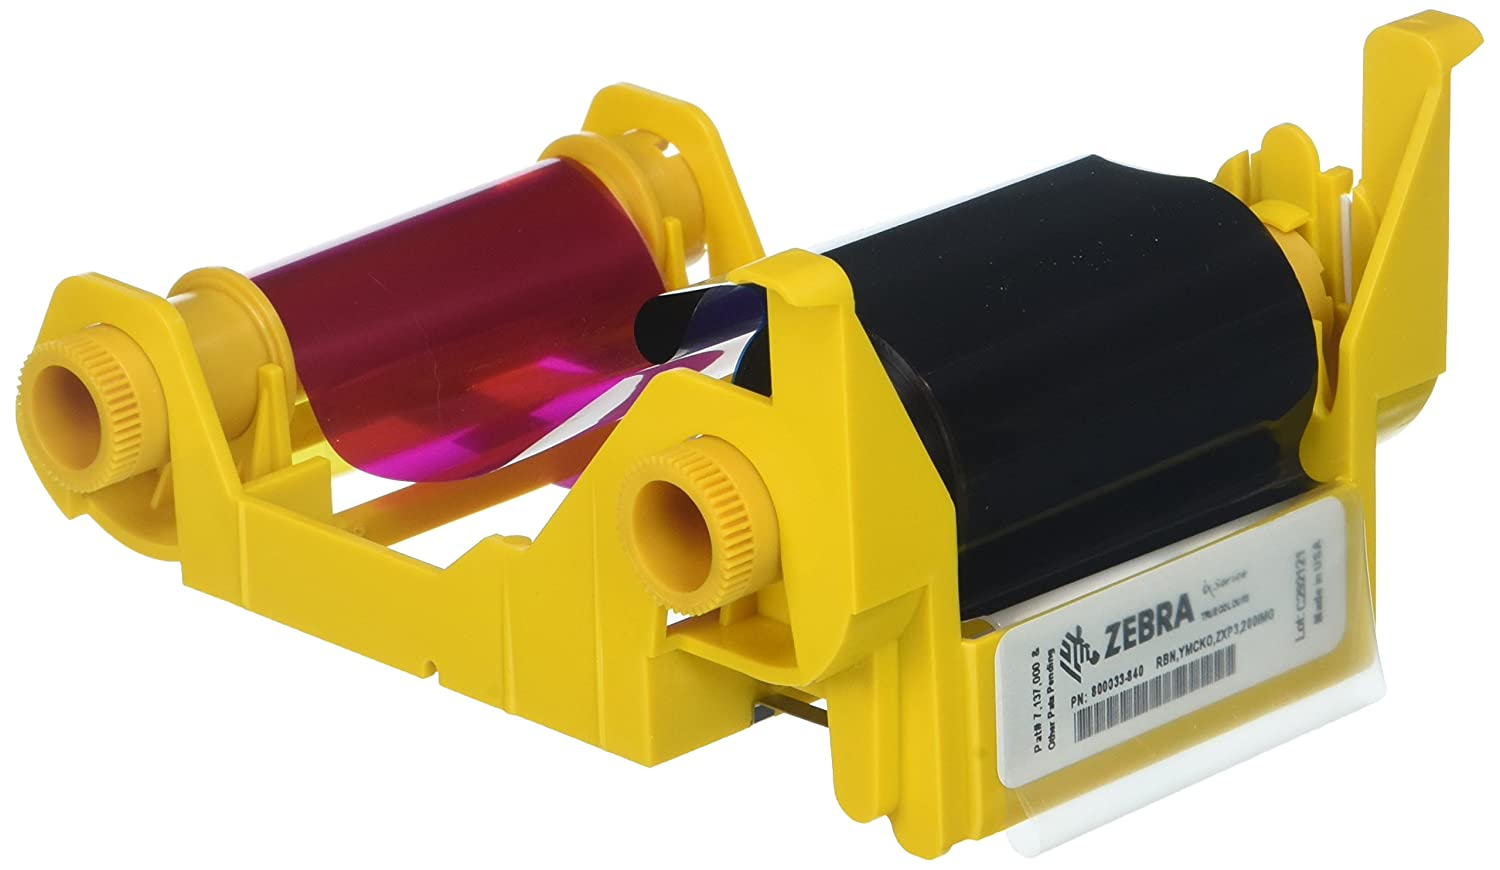 Zebra Technologies 800033-840 IX Series Color Ribbon for ZXP3 Card Printer GT0174